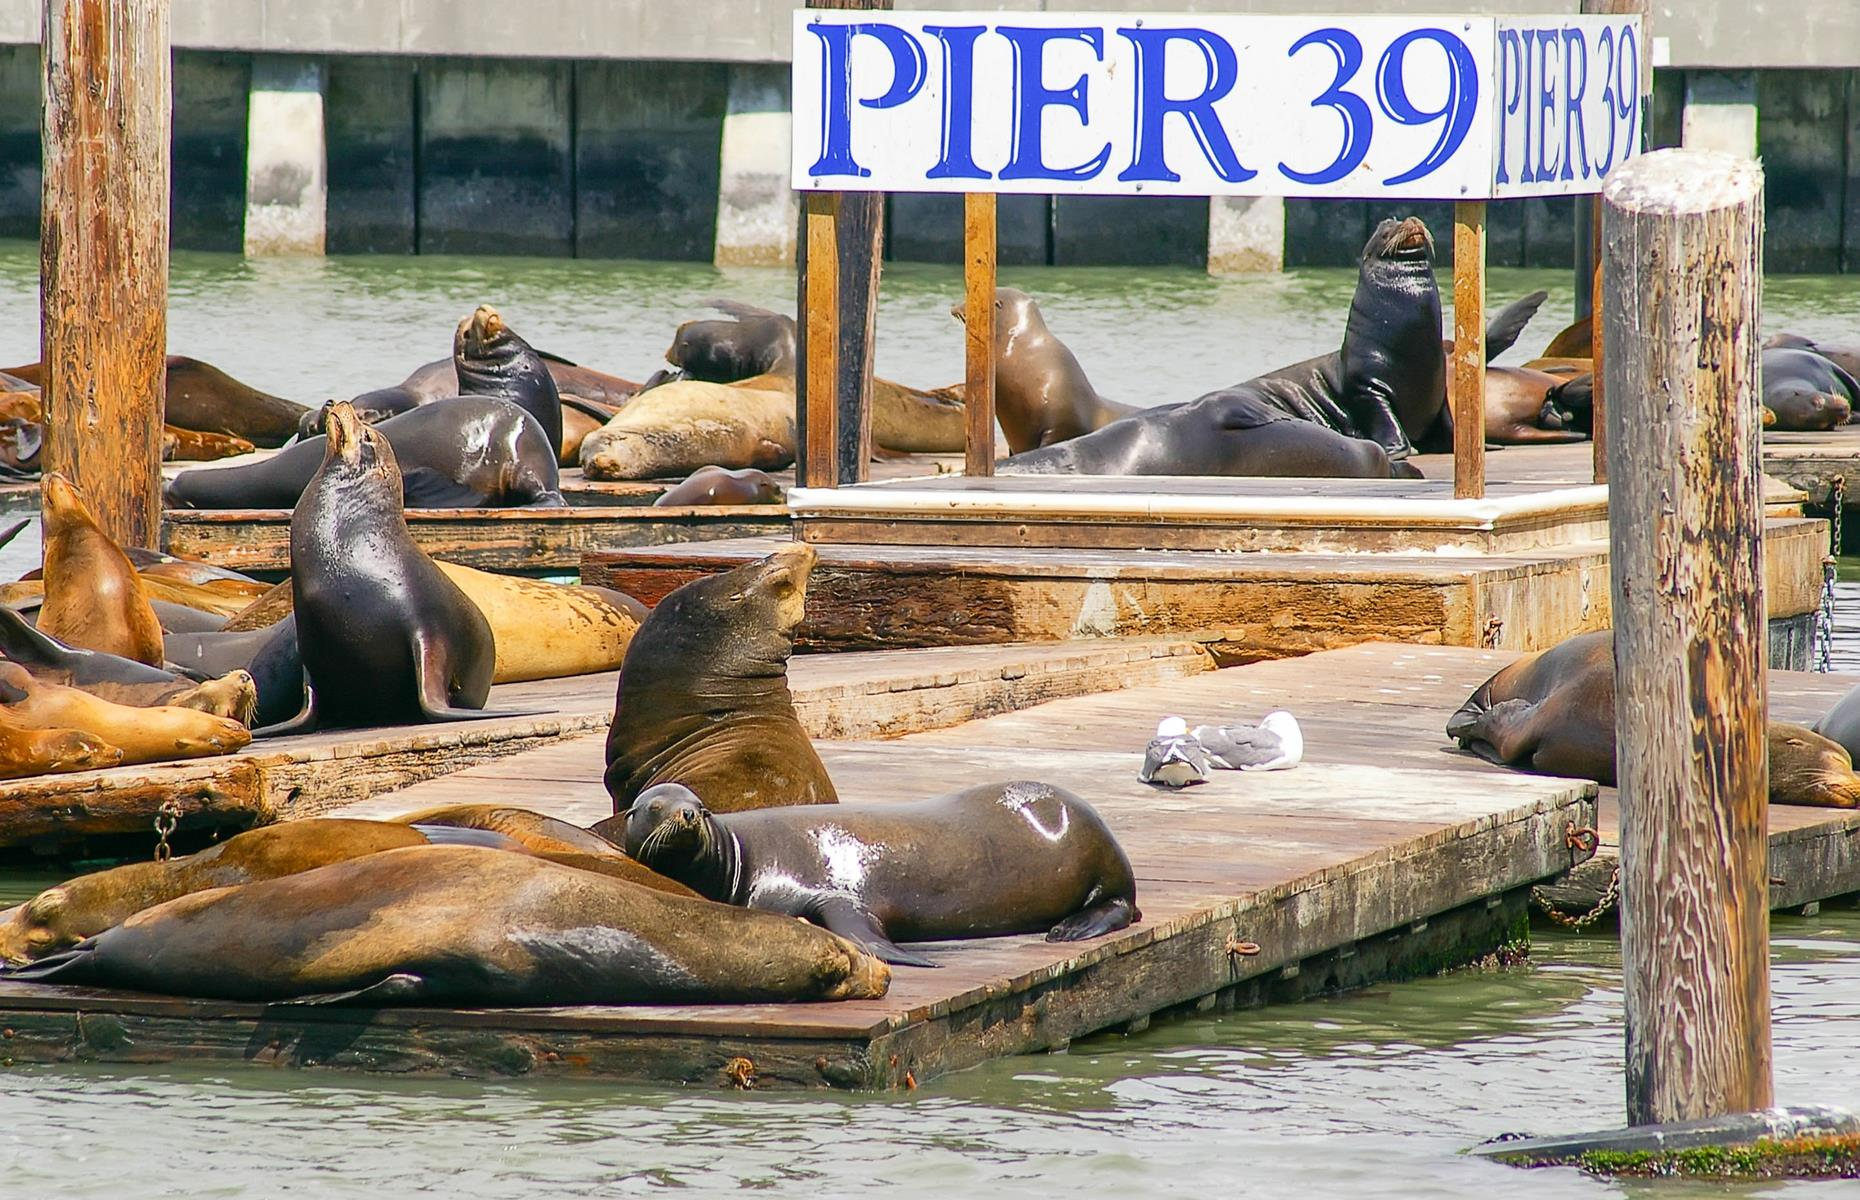 Slide 42 of 49: Pier 39 is a favorite tourist stop in the City by the Bay – visitors generally come in their hordes to take in the basking sea lions, colorful amusements and wacky street performers. Modified operating hours and one-way systems aim to keep Pier 39's visitors safe, but those hoping for a quieter experience might make a beeline for Pier 7 instead.